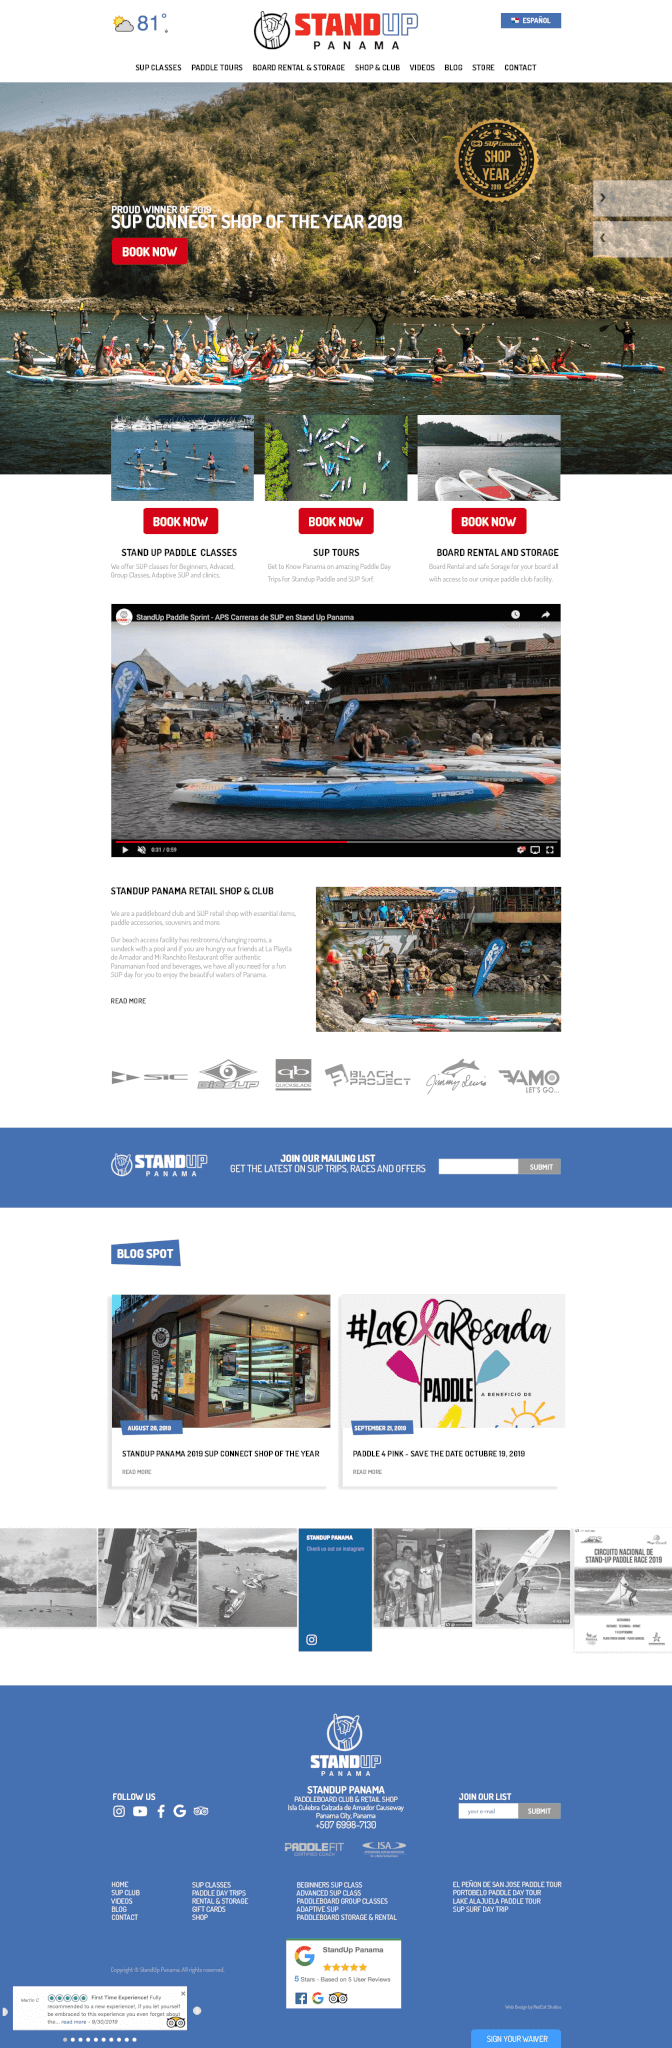 Tour and Activity Operators web site design